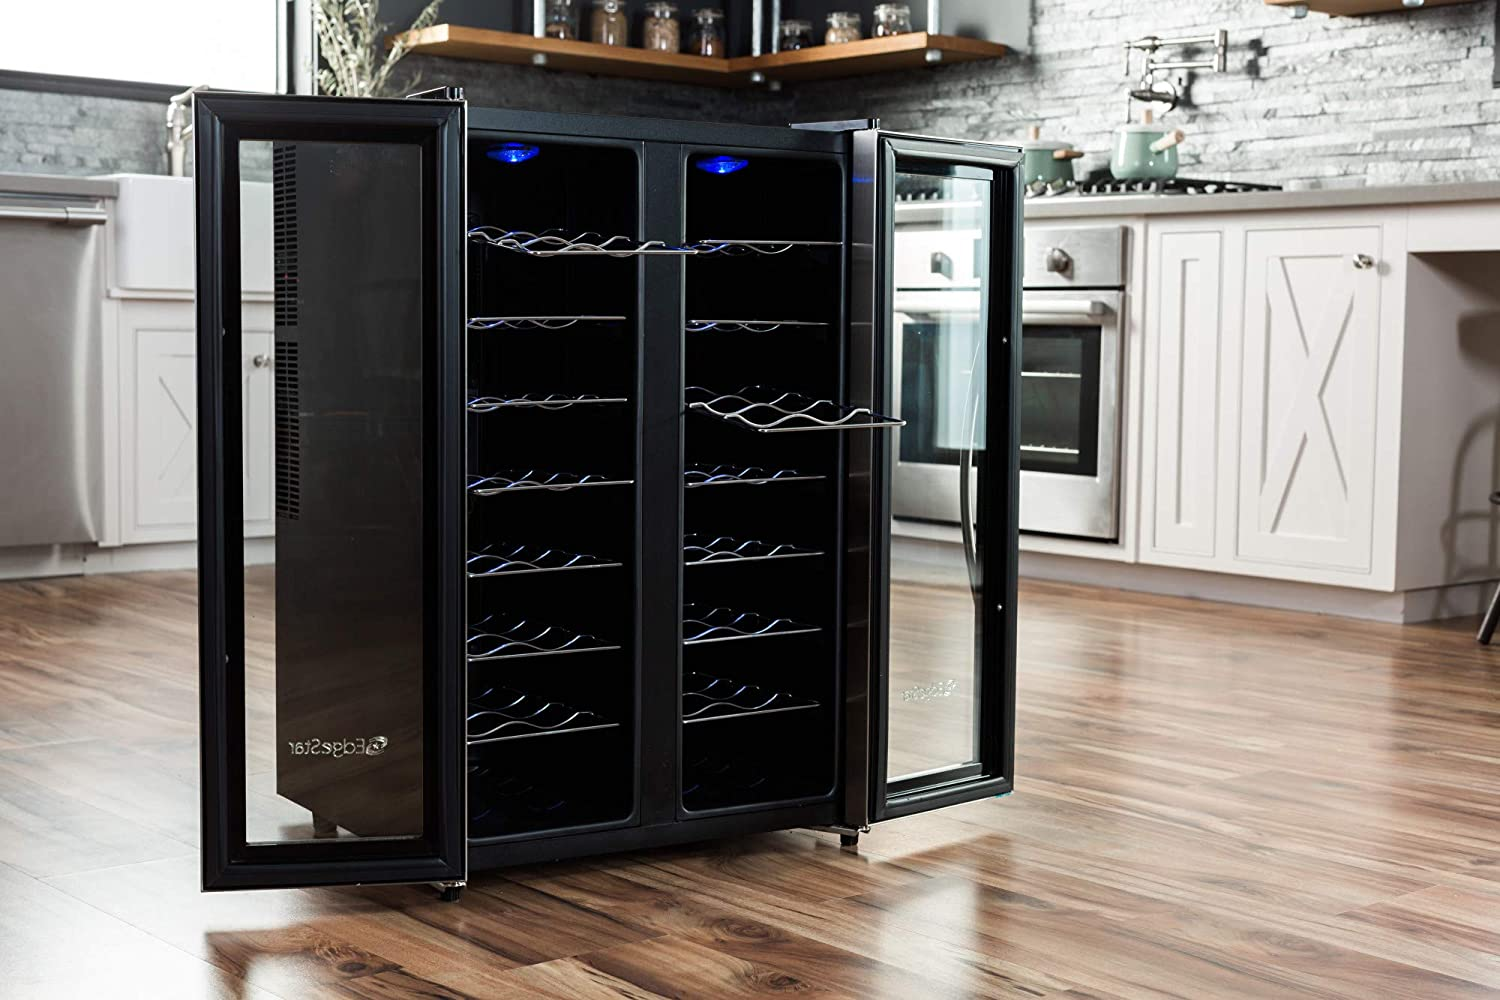 EdgeStar ワインクーラー ボトル32本 32 Bottle Dual Zone Wine Cooler with Stainless Steel Trimmed French Doors and Digital Controls 並行輸入